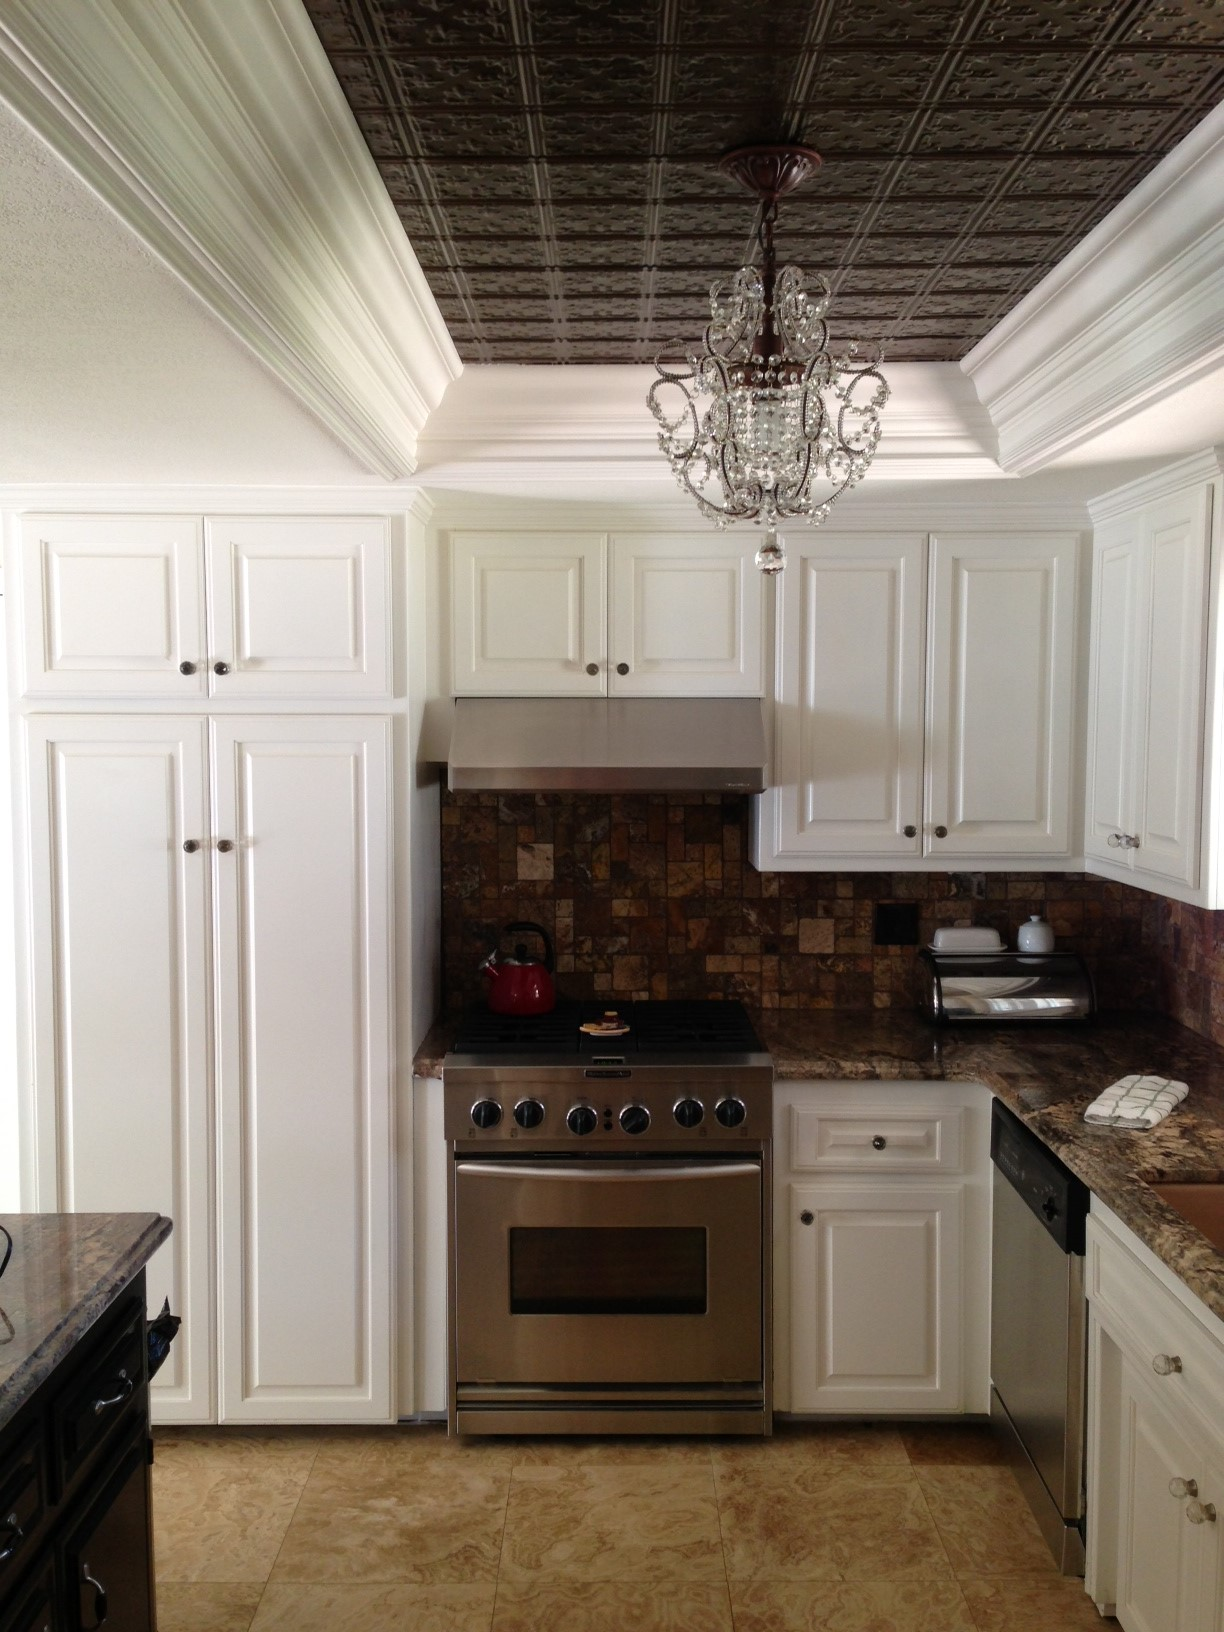 blog kitchen cabinet remodeling An Inexpensive Kitchen Cabinet Remodel